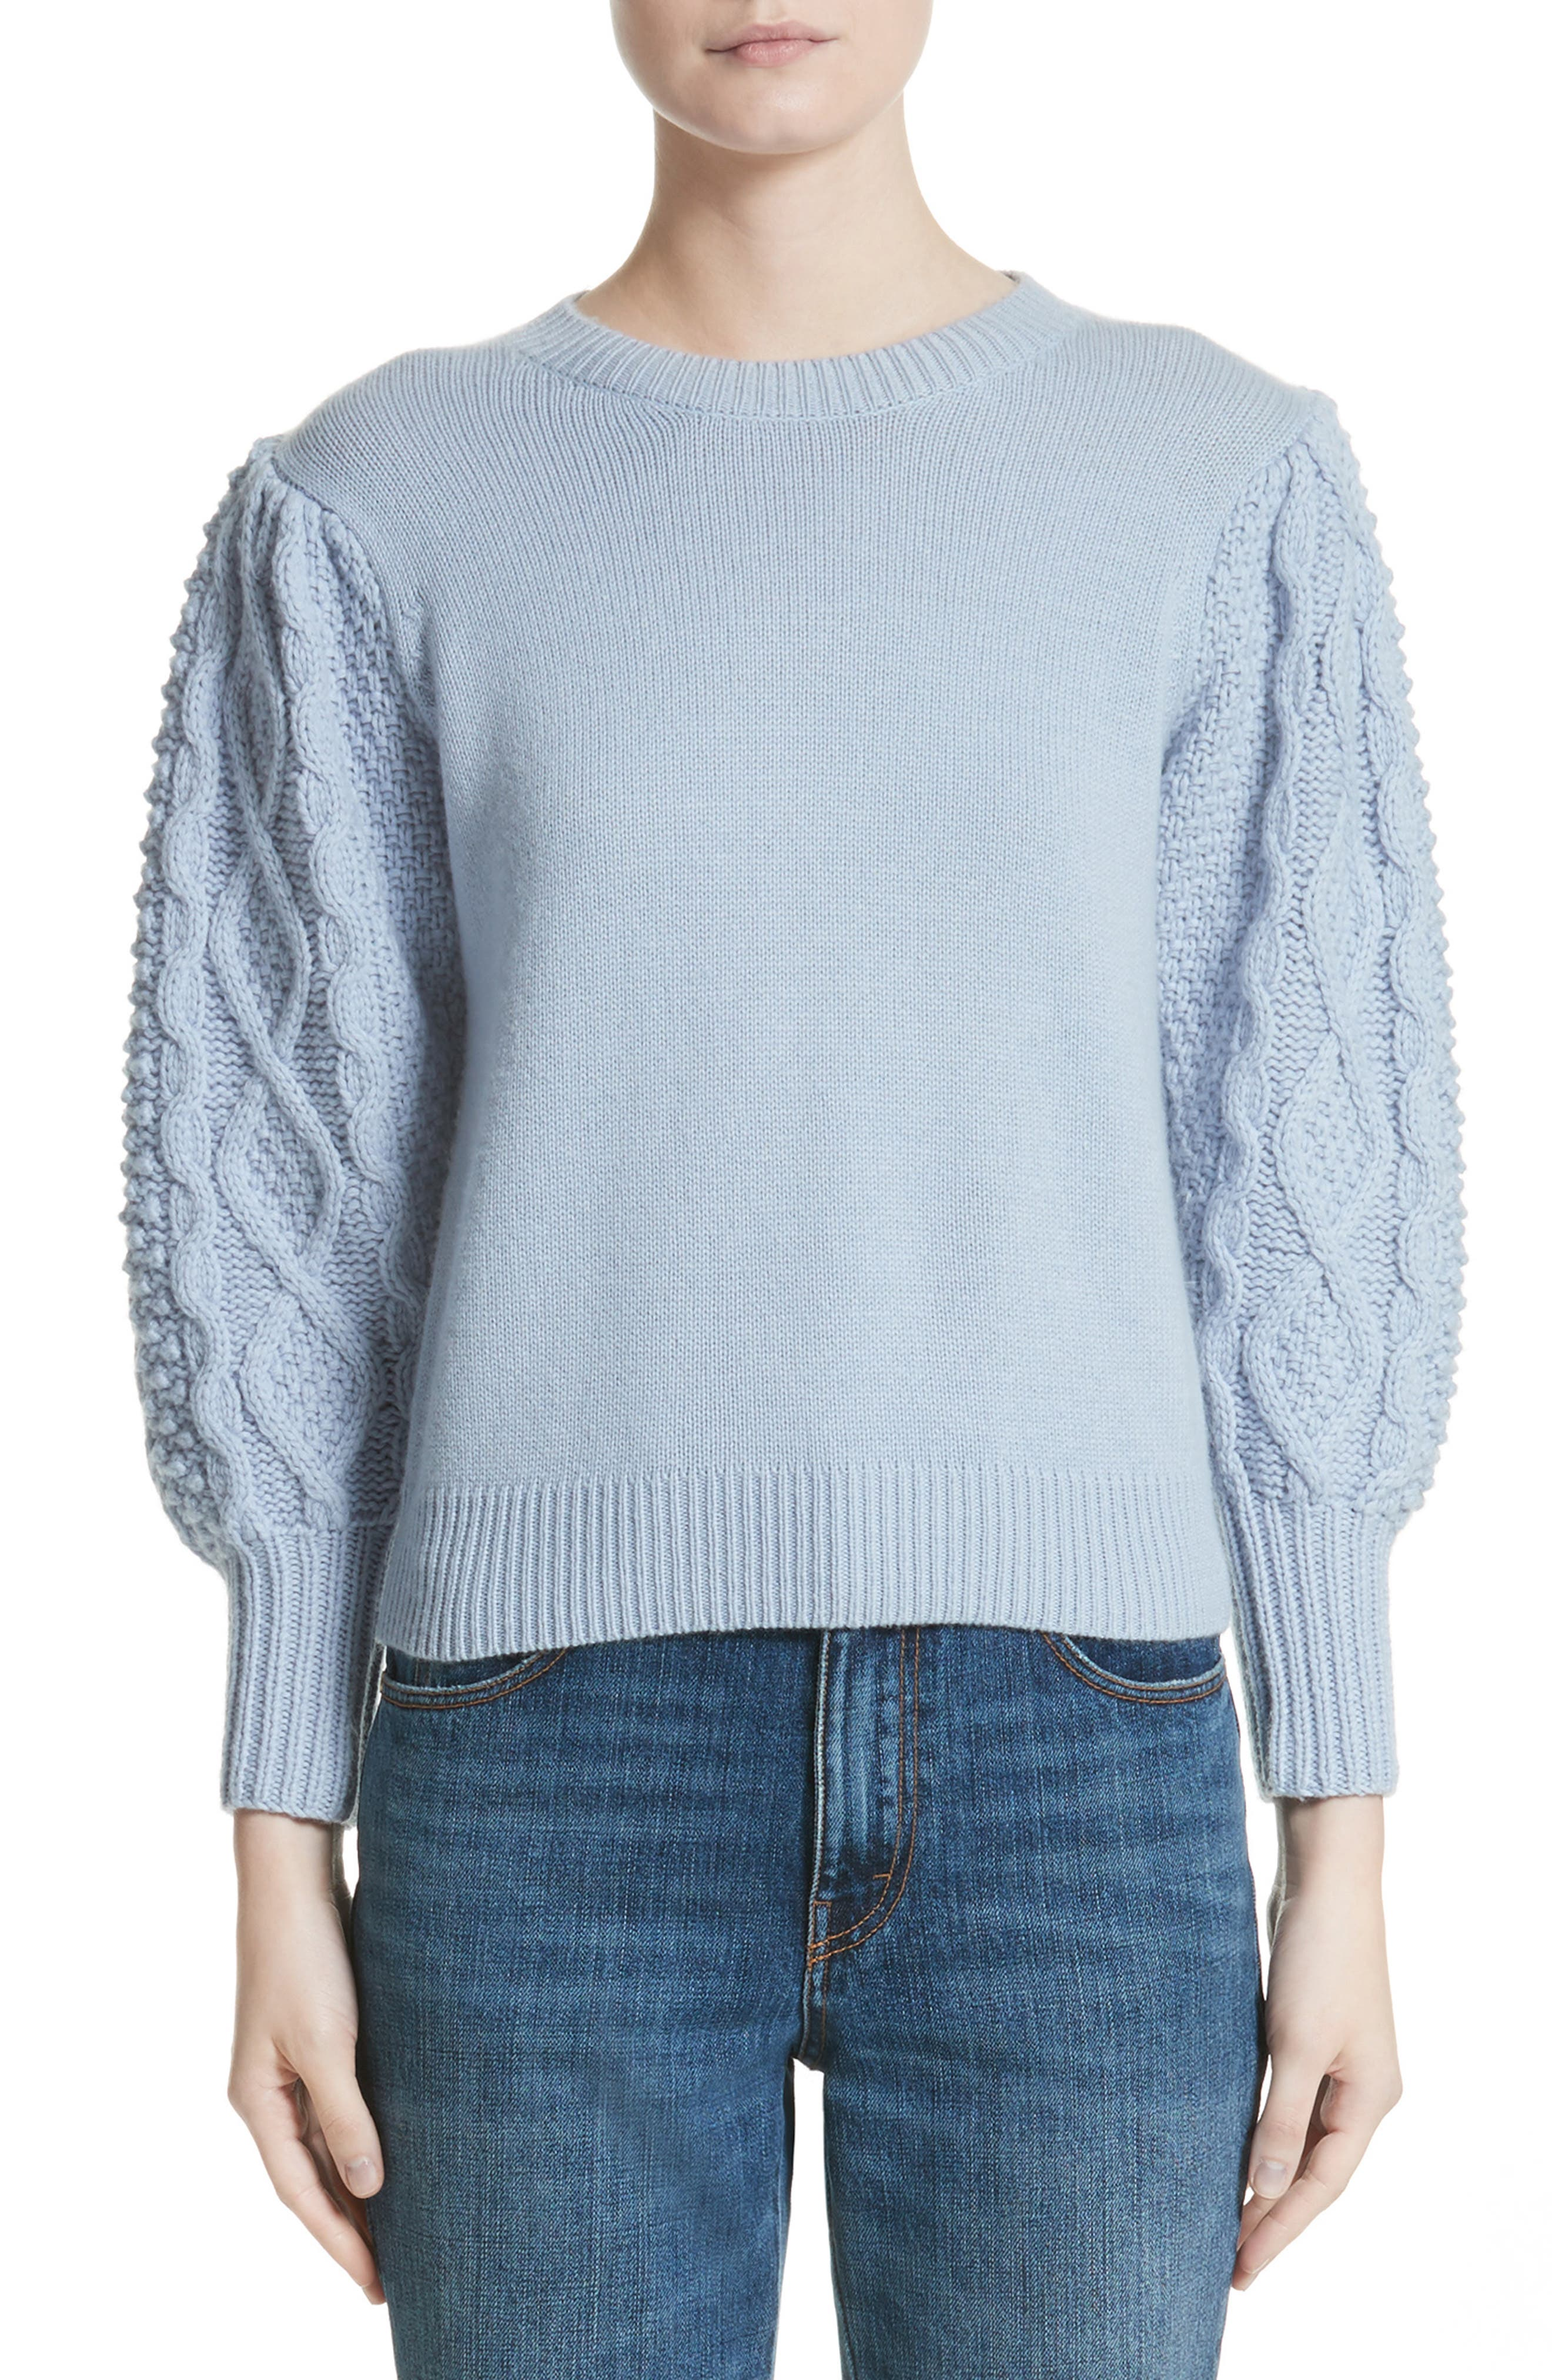 Alternate Image 1 Selected - Co Puff Sleeve Wool & Cashmere Sweater